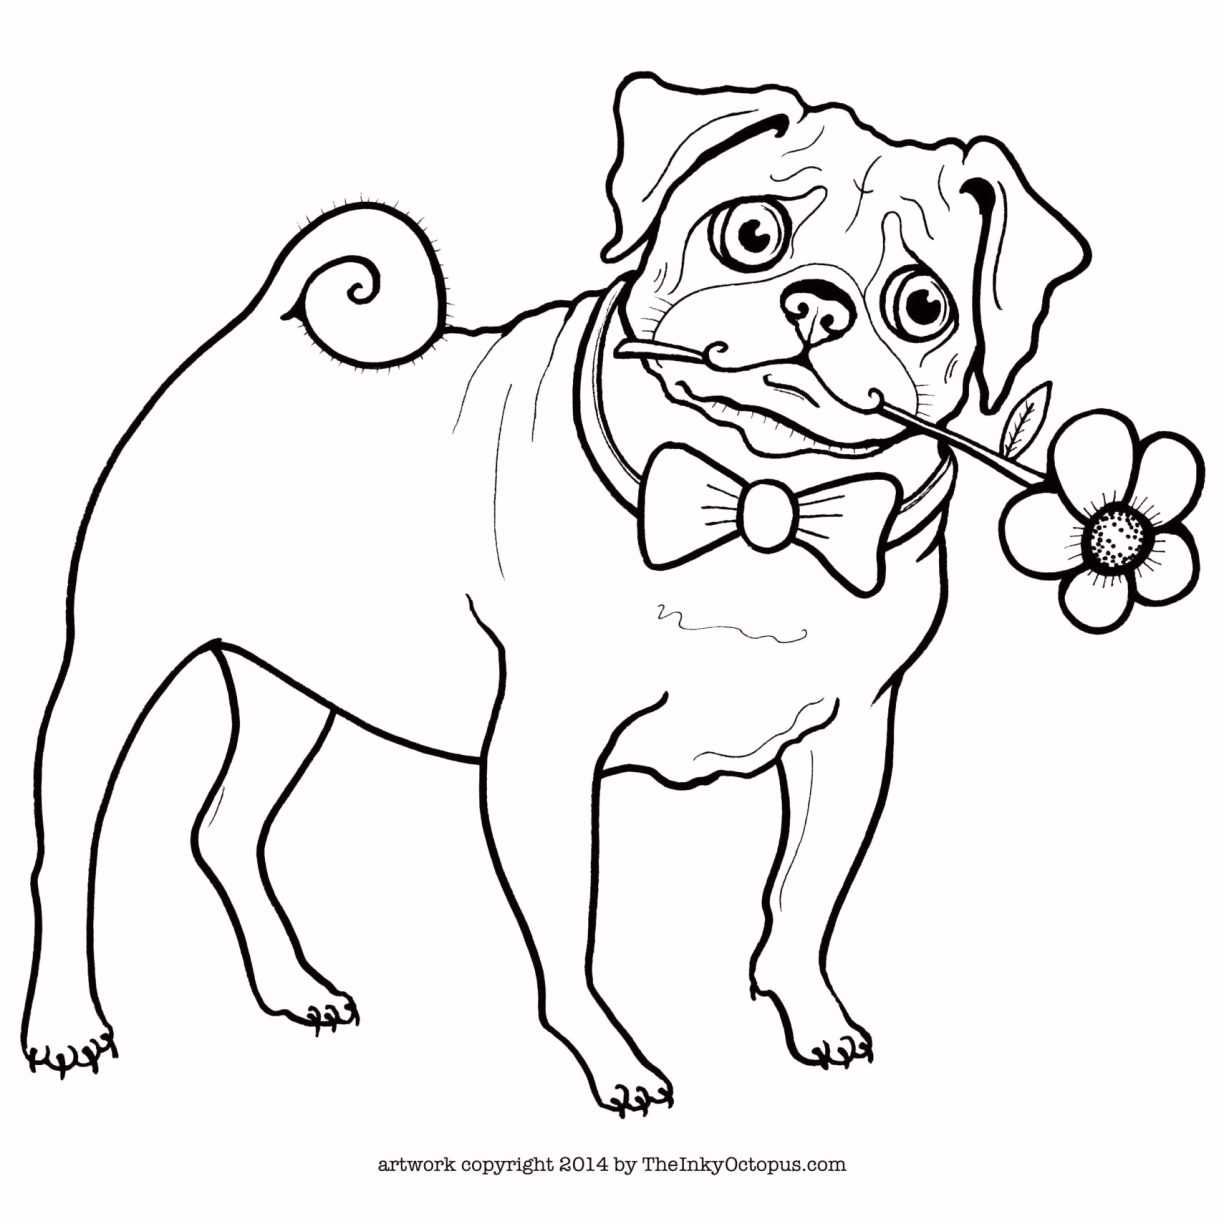 Pug Puppy Coloring Pages Pug Outline Drawing Free Download Best Pug Outline Drawing On